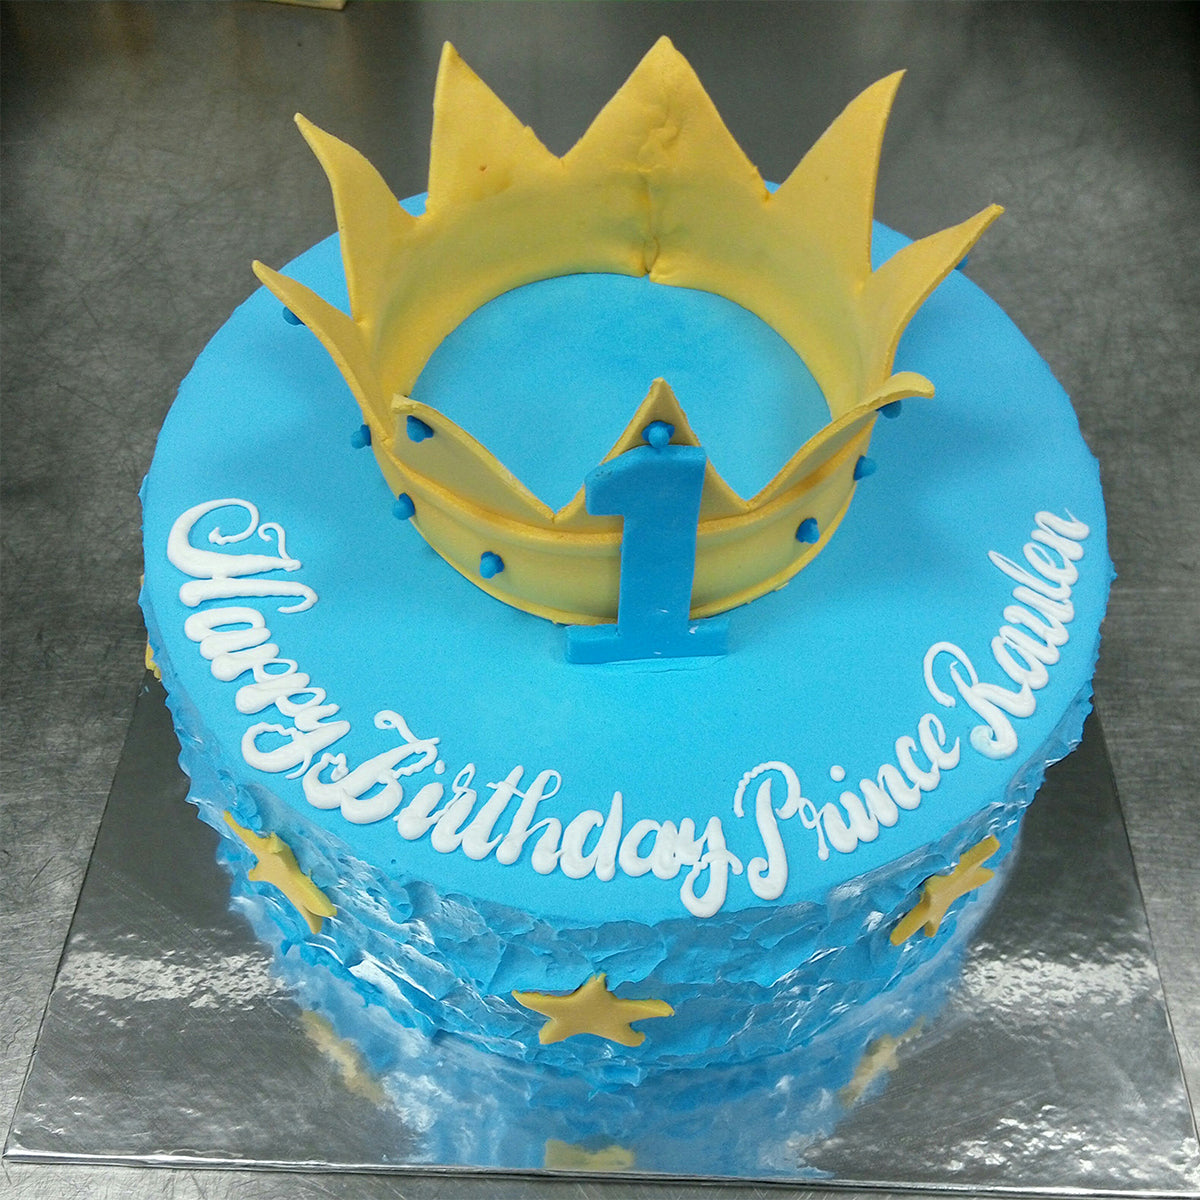 Blue Birthday Cake - CWD - Arabian Petals